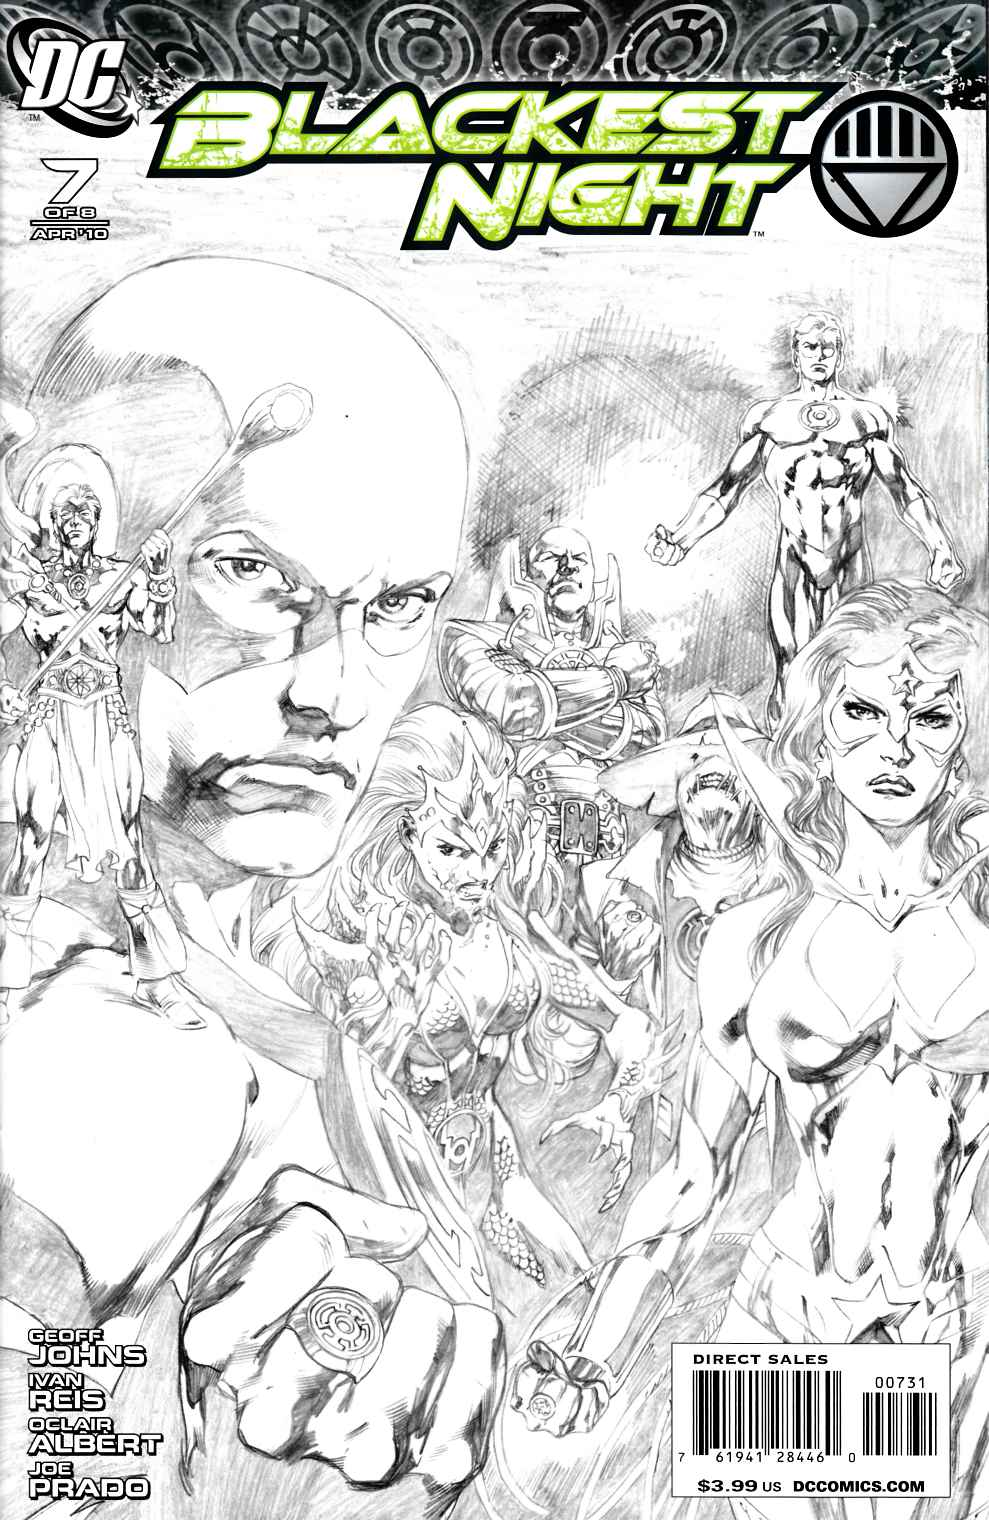 Blackest Night #7 Reis Variant Sketch Cover Near Mint (9.4) [DC Comic] THUMBNAIL